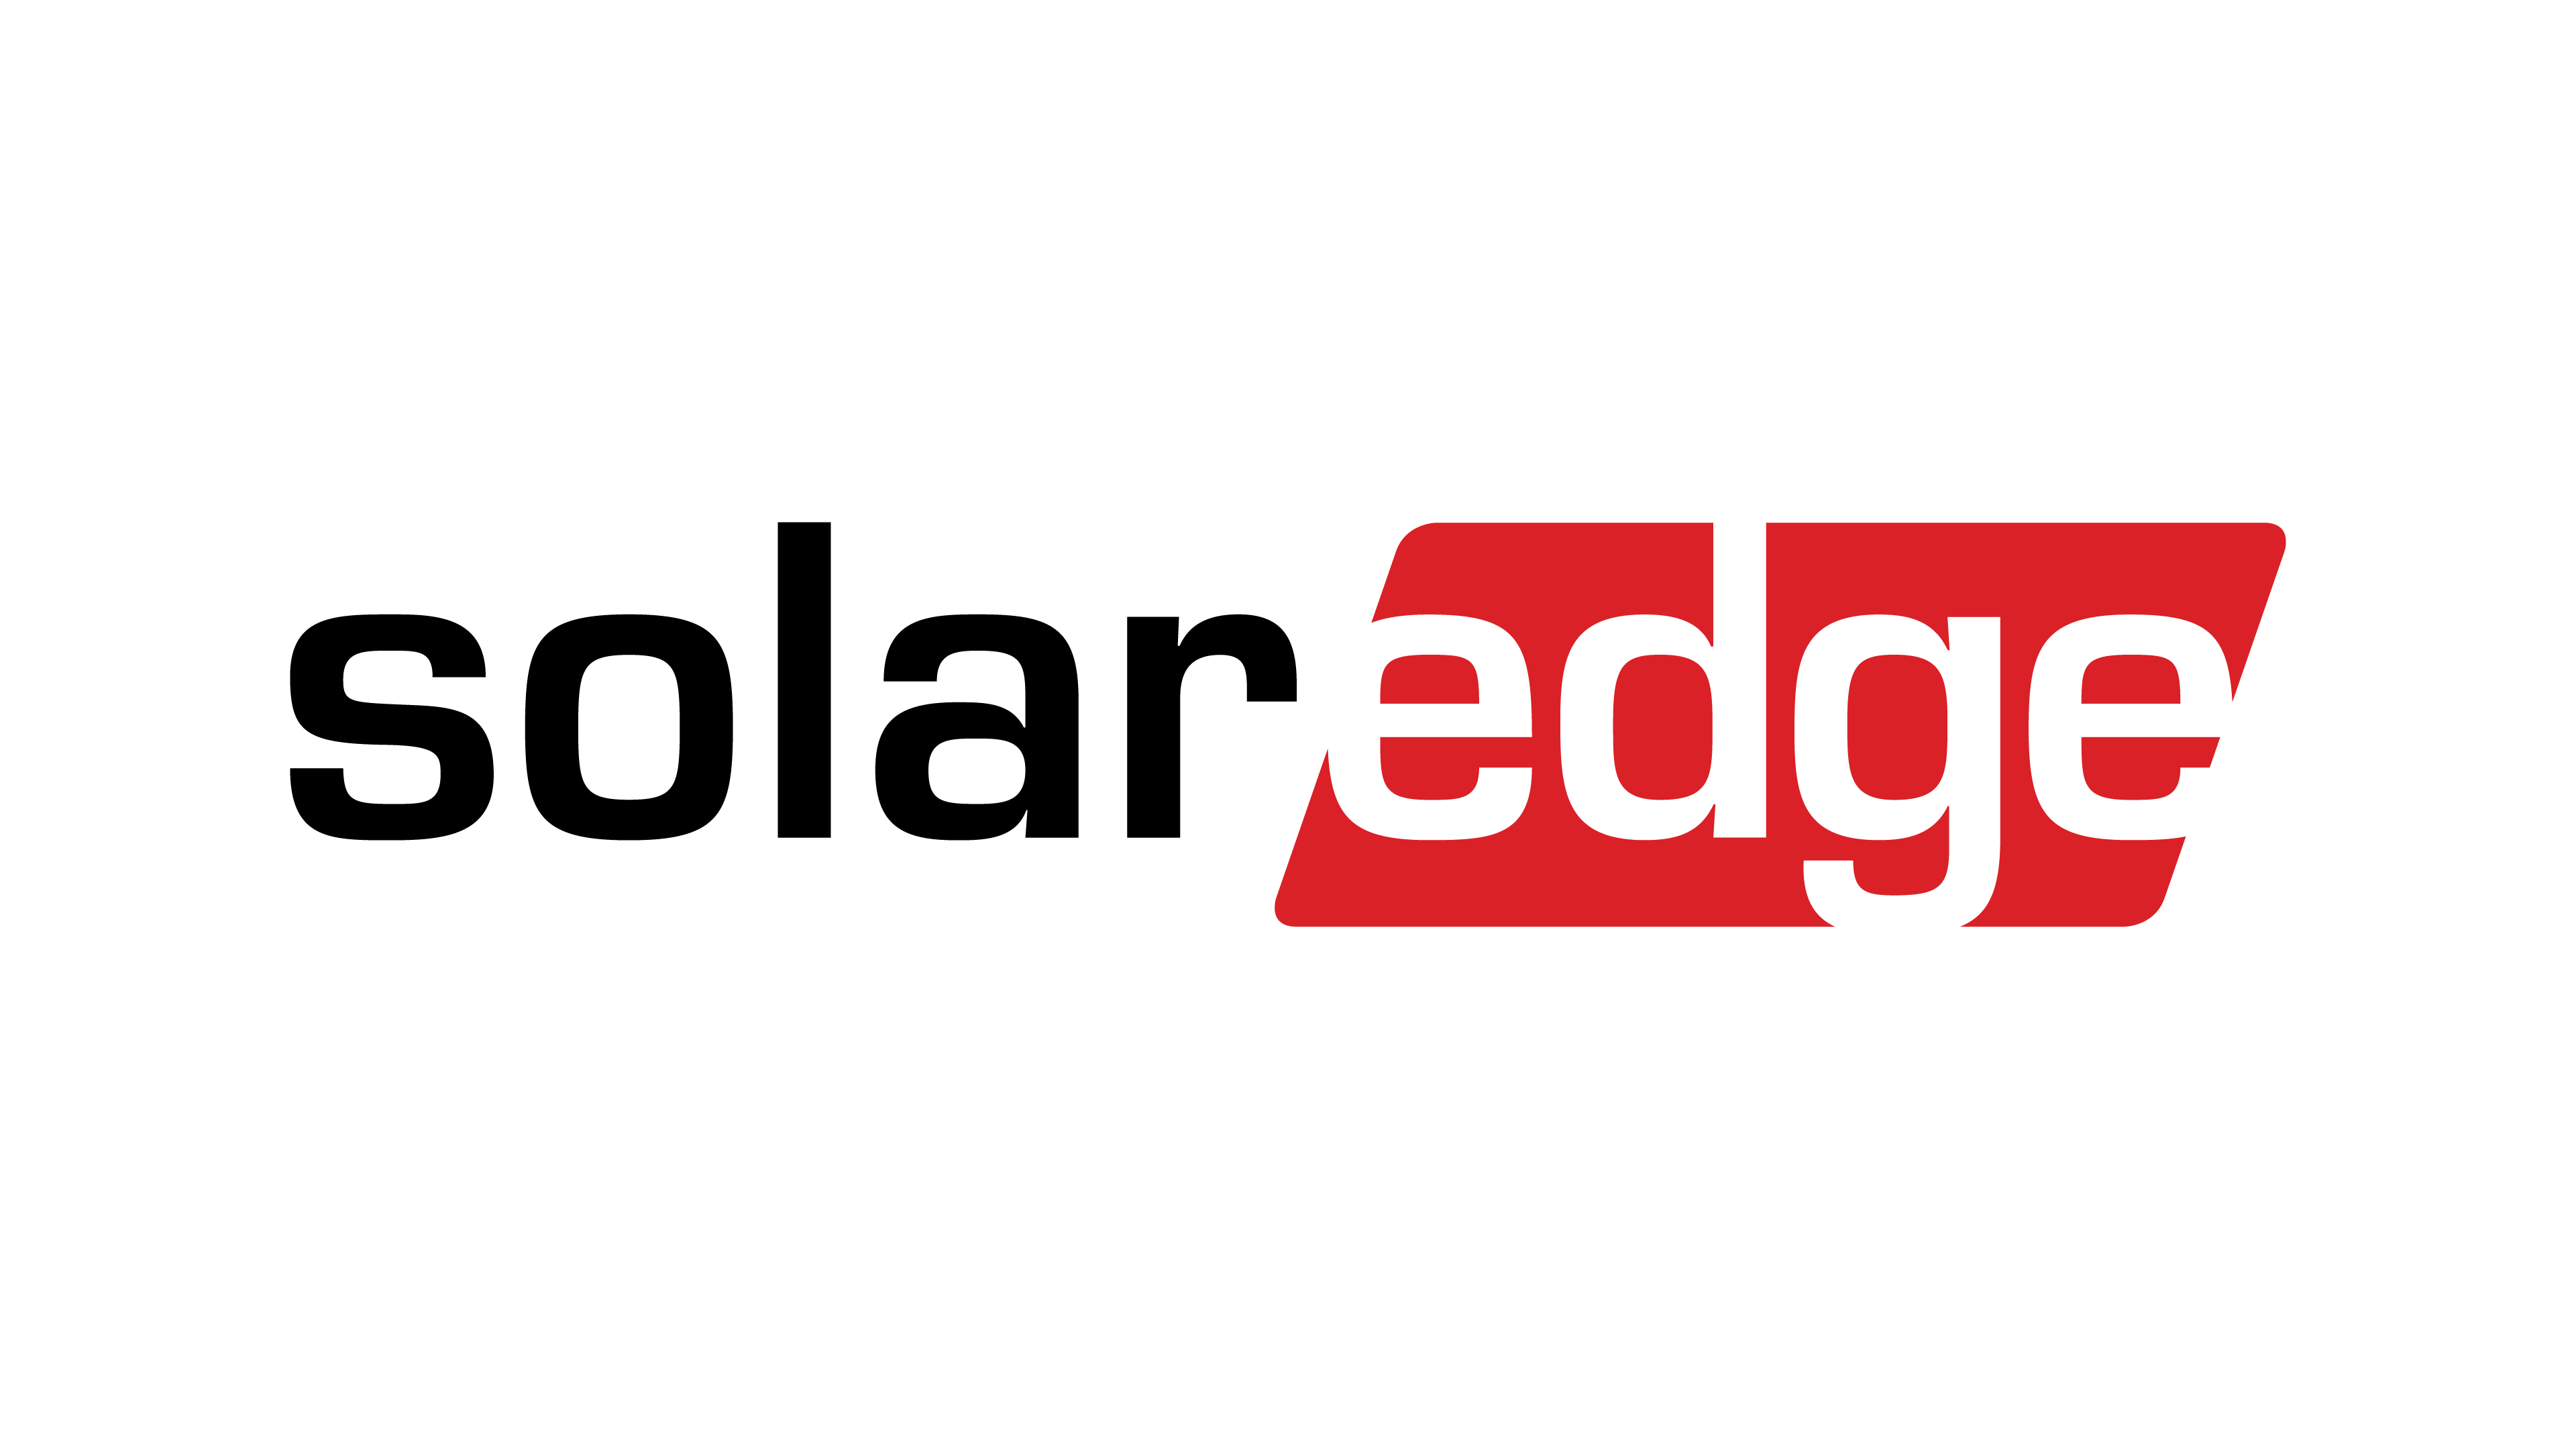 The Solaredge logo